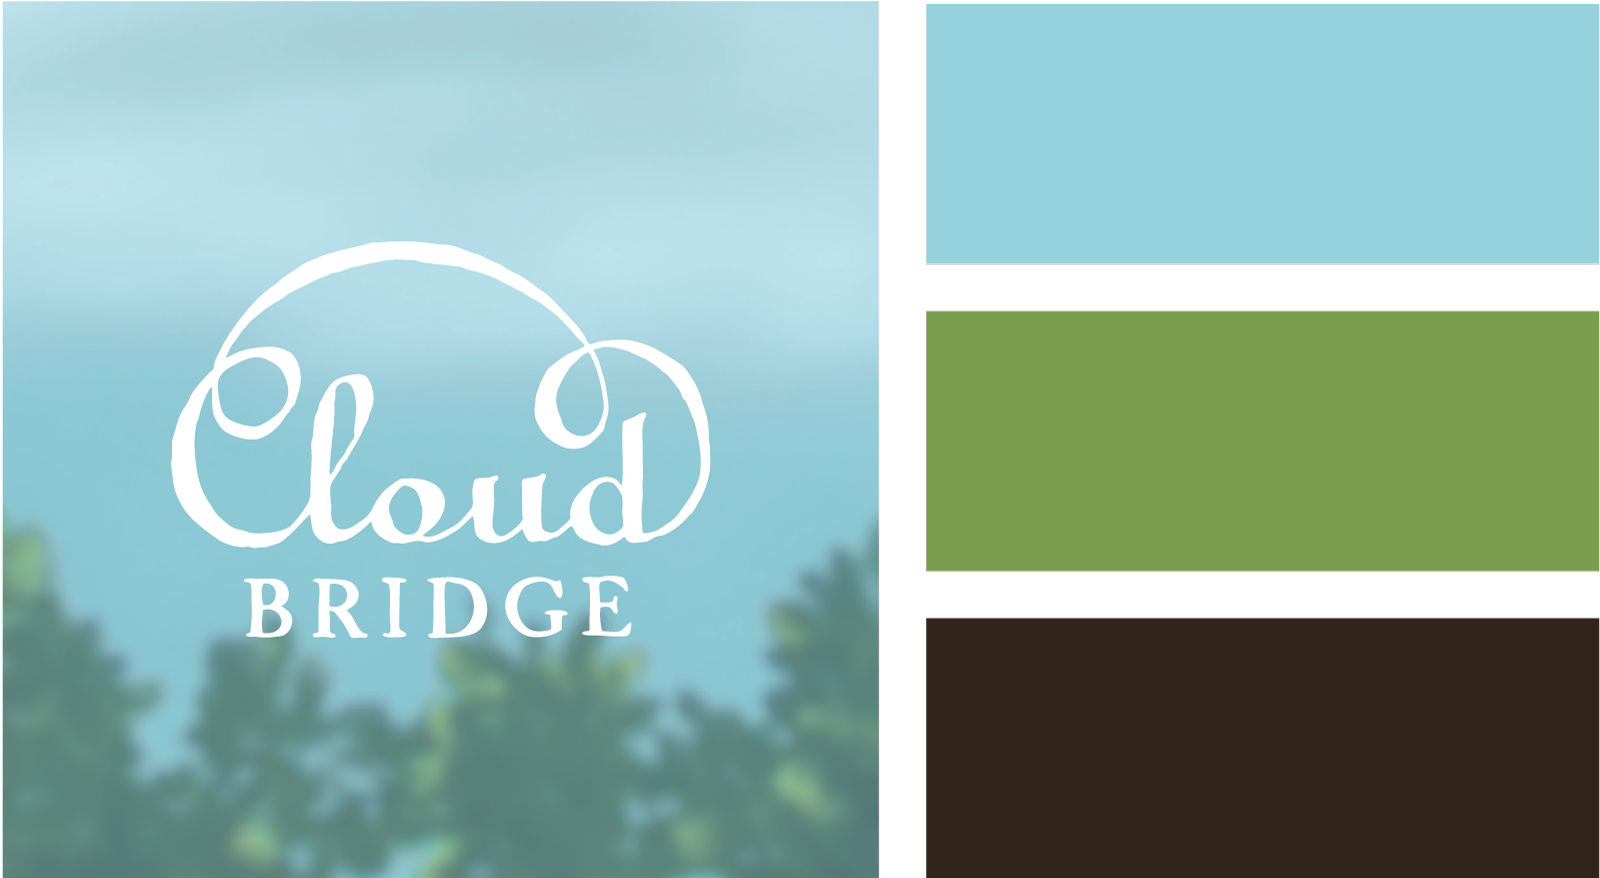 Cloudbridge_Colors.png